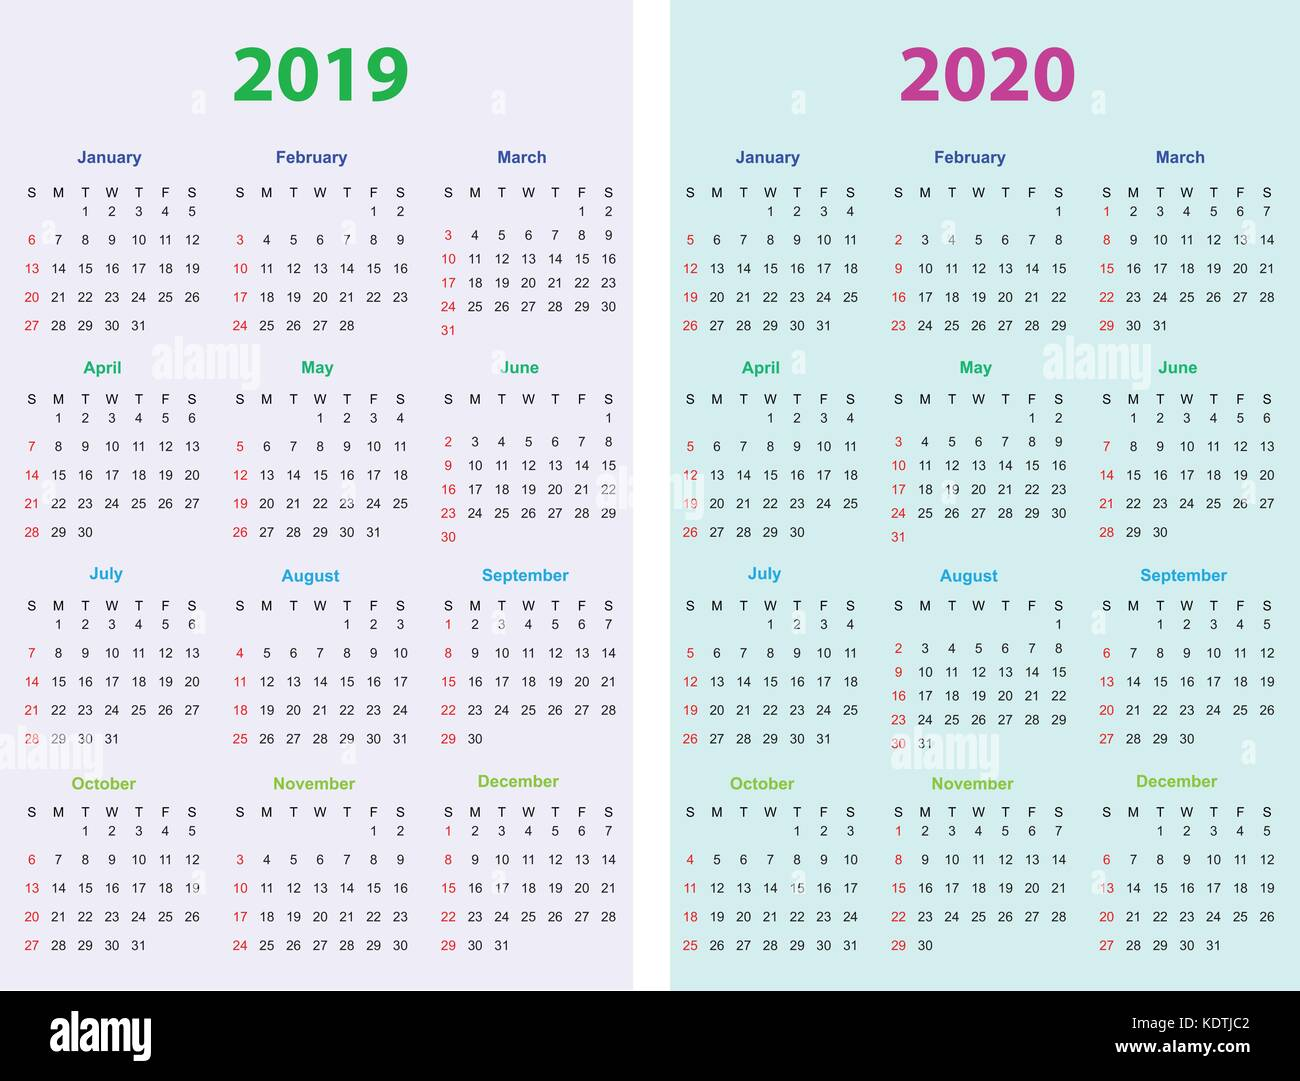 Calendario 2020 2020 Para Imprimir.Calendario 2020 Wonderful Image Gallery